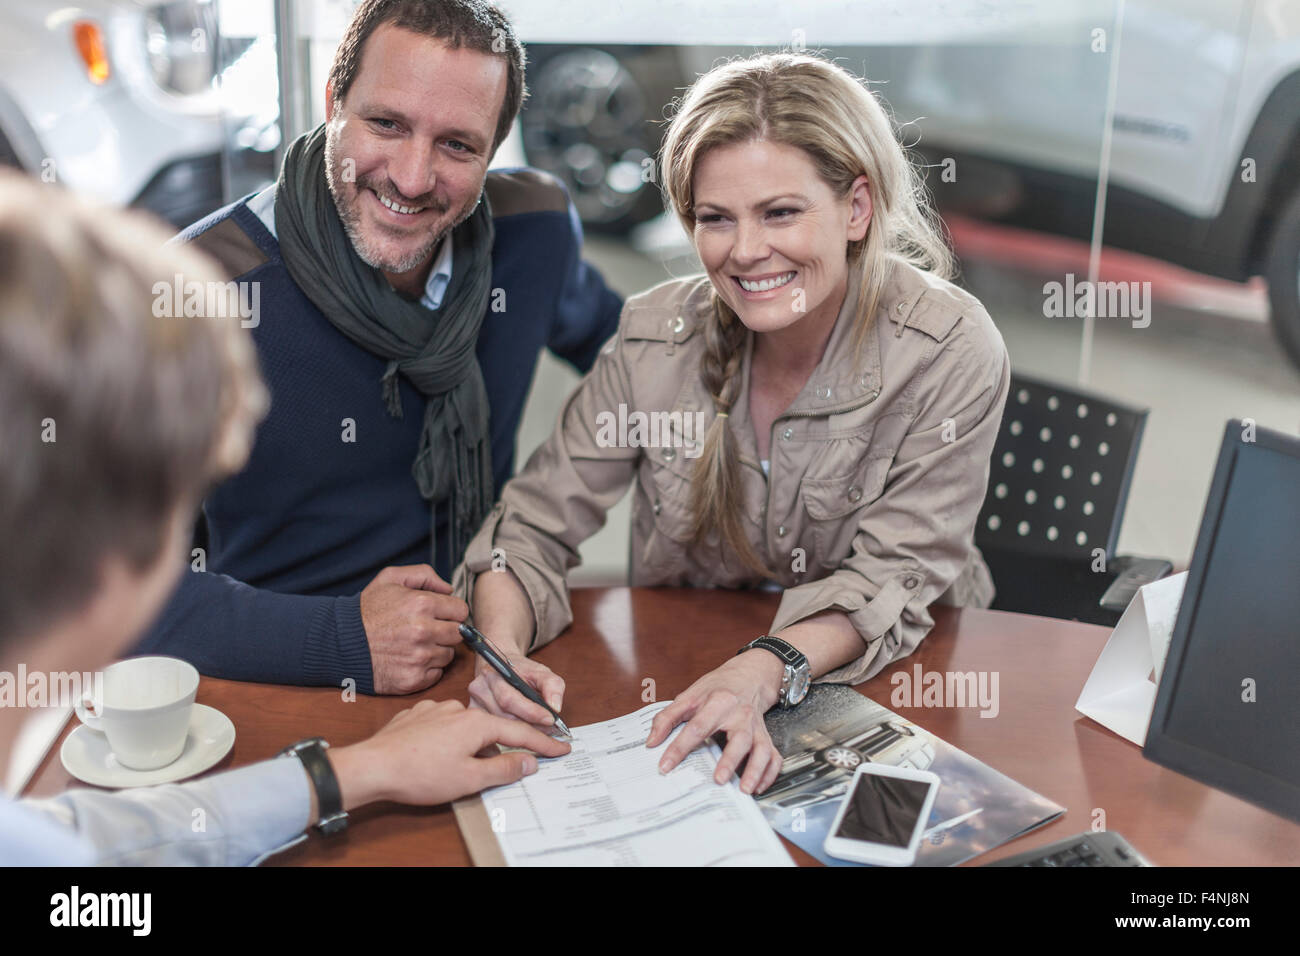 Couple signing sales contract at car dealership - Stock Image